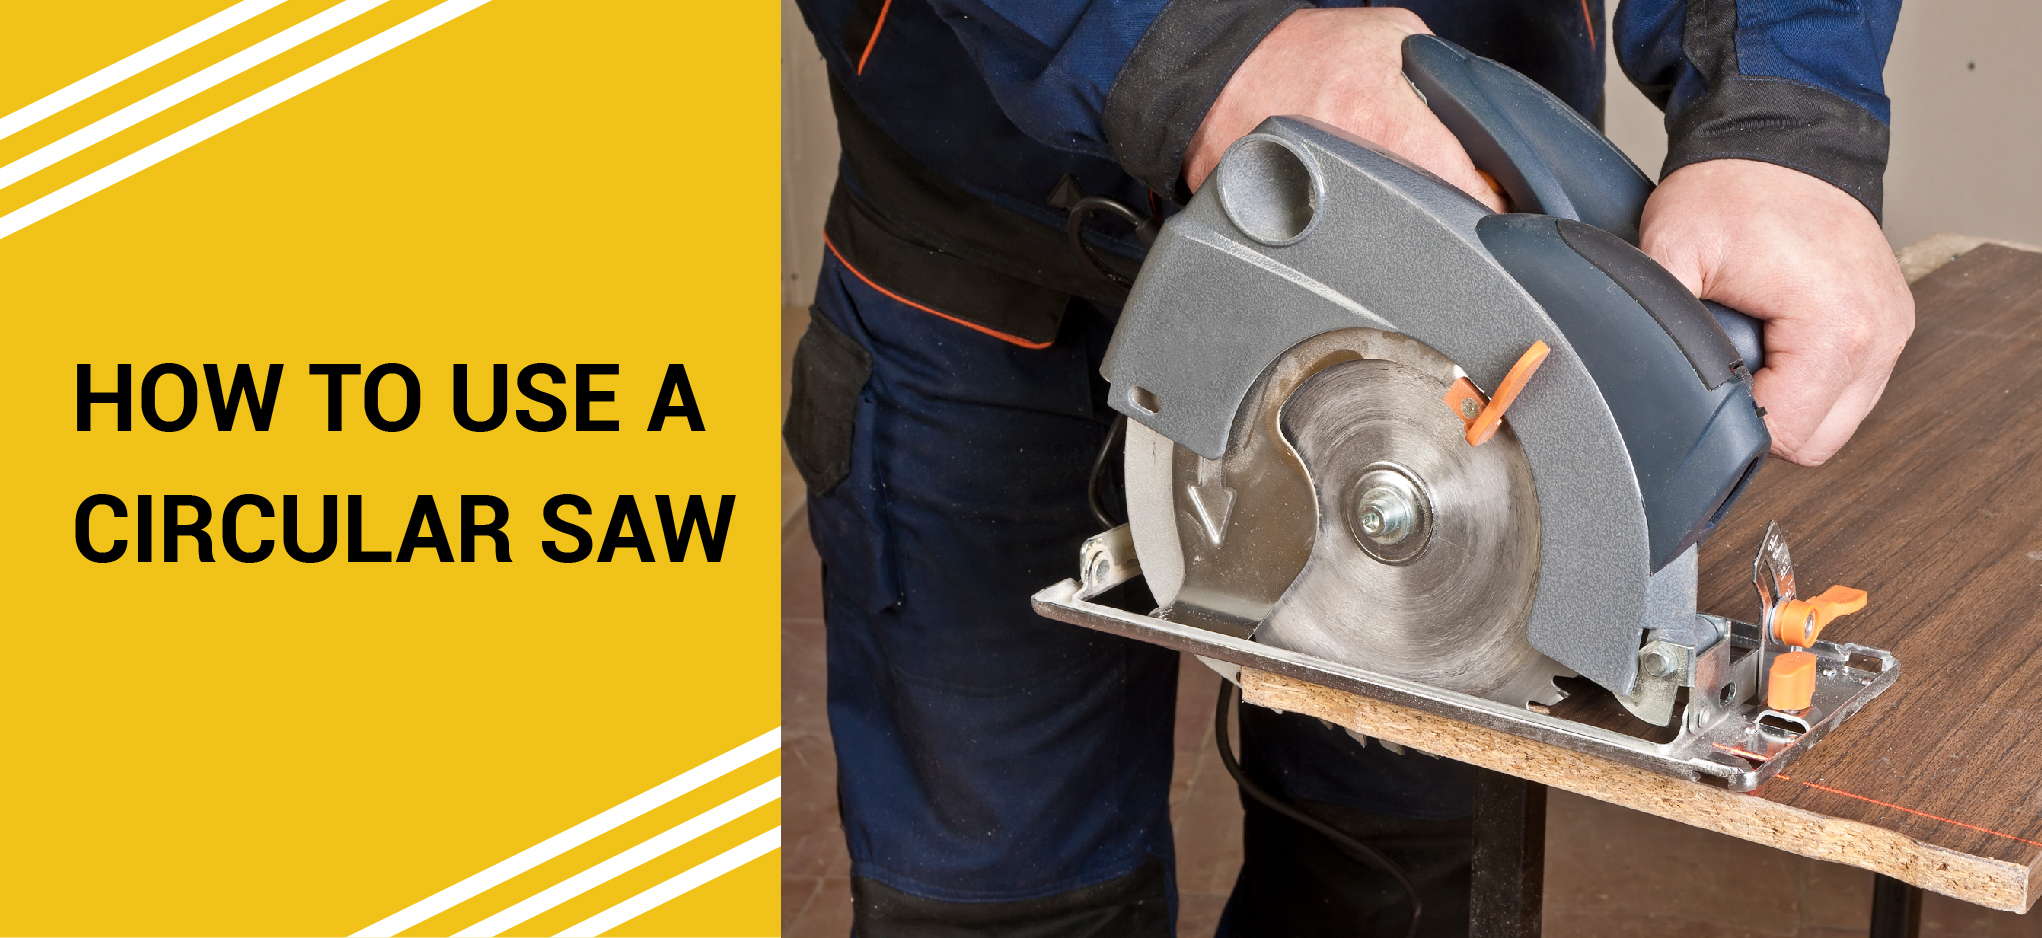 using a circular saw on a table